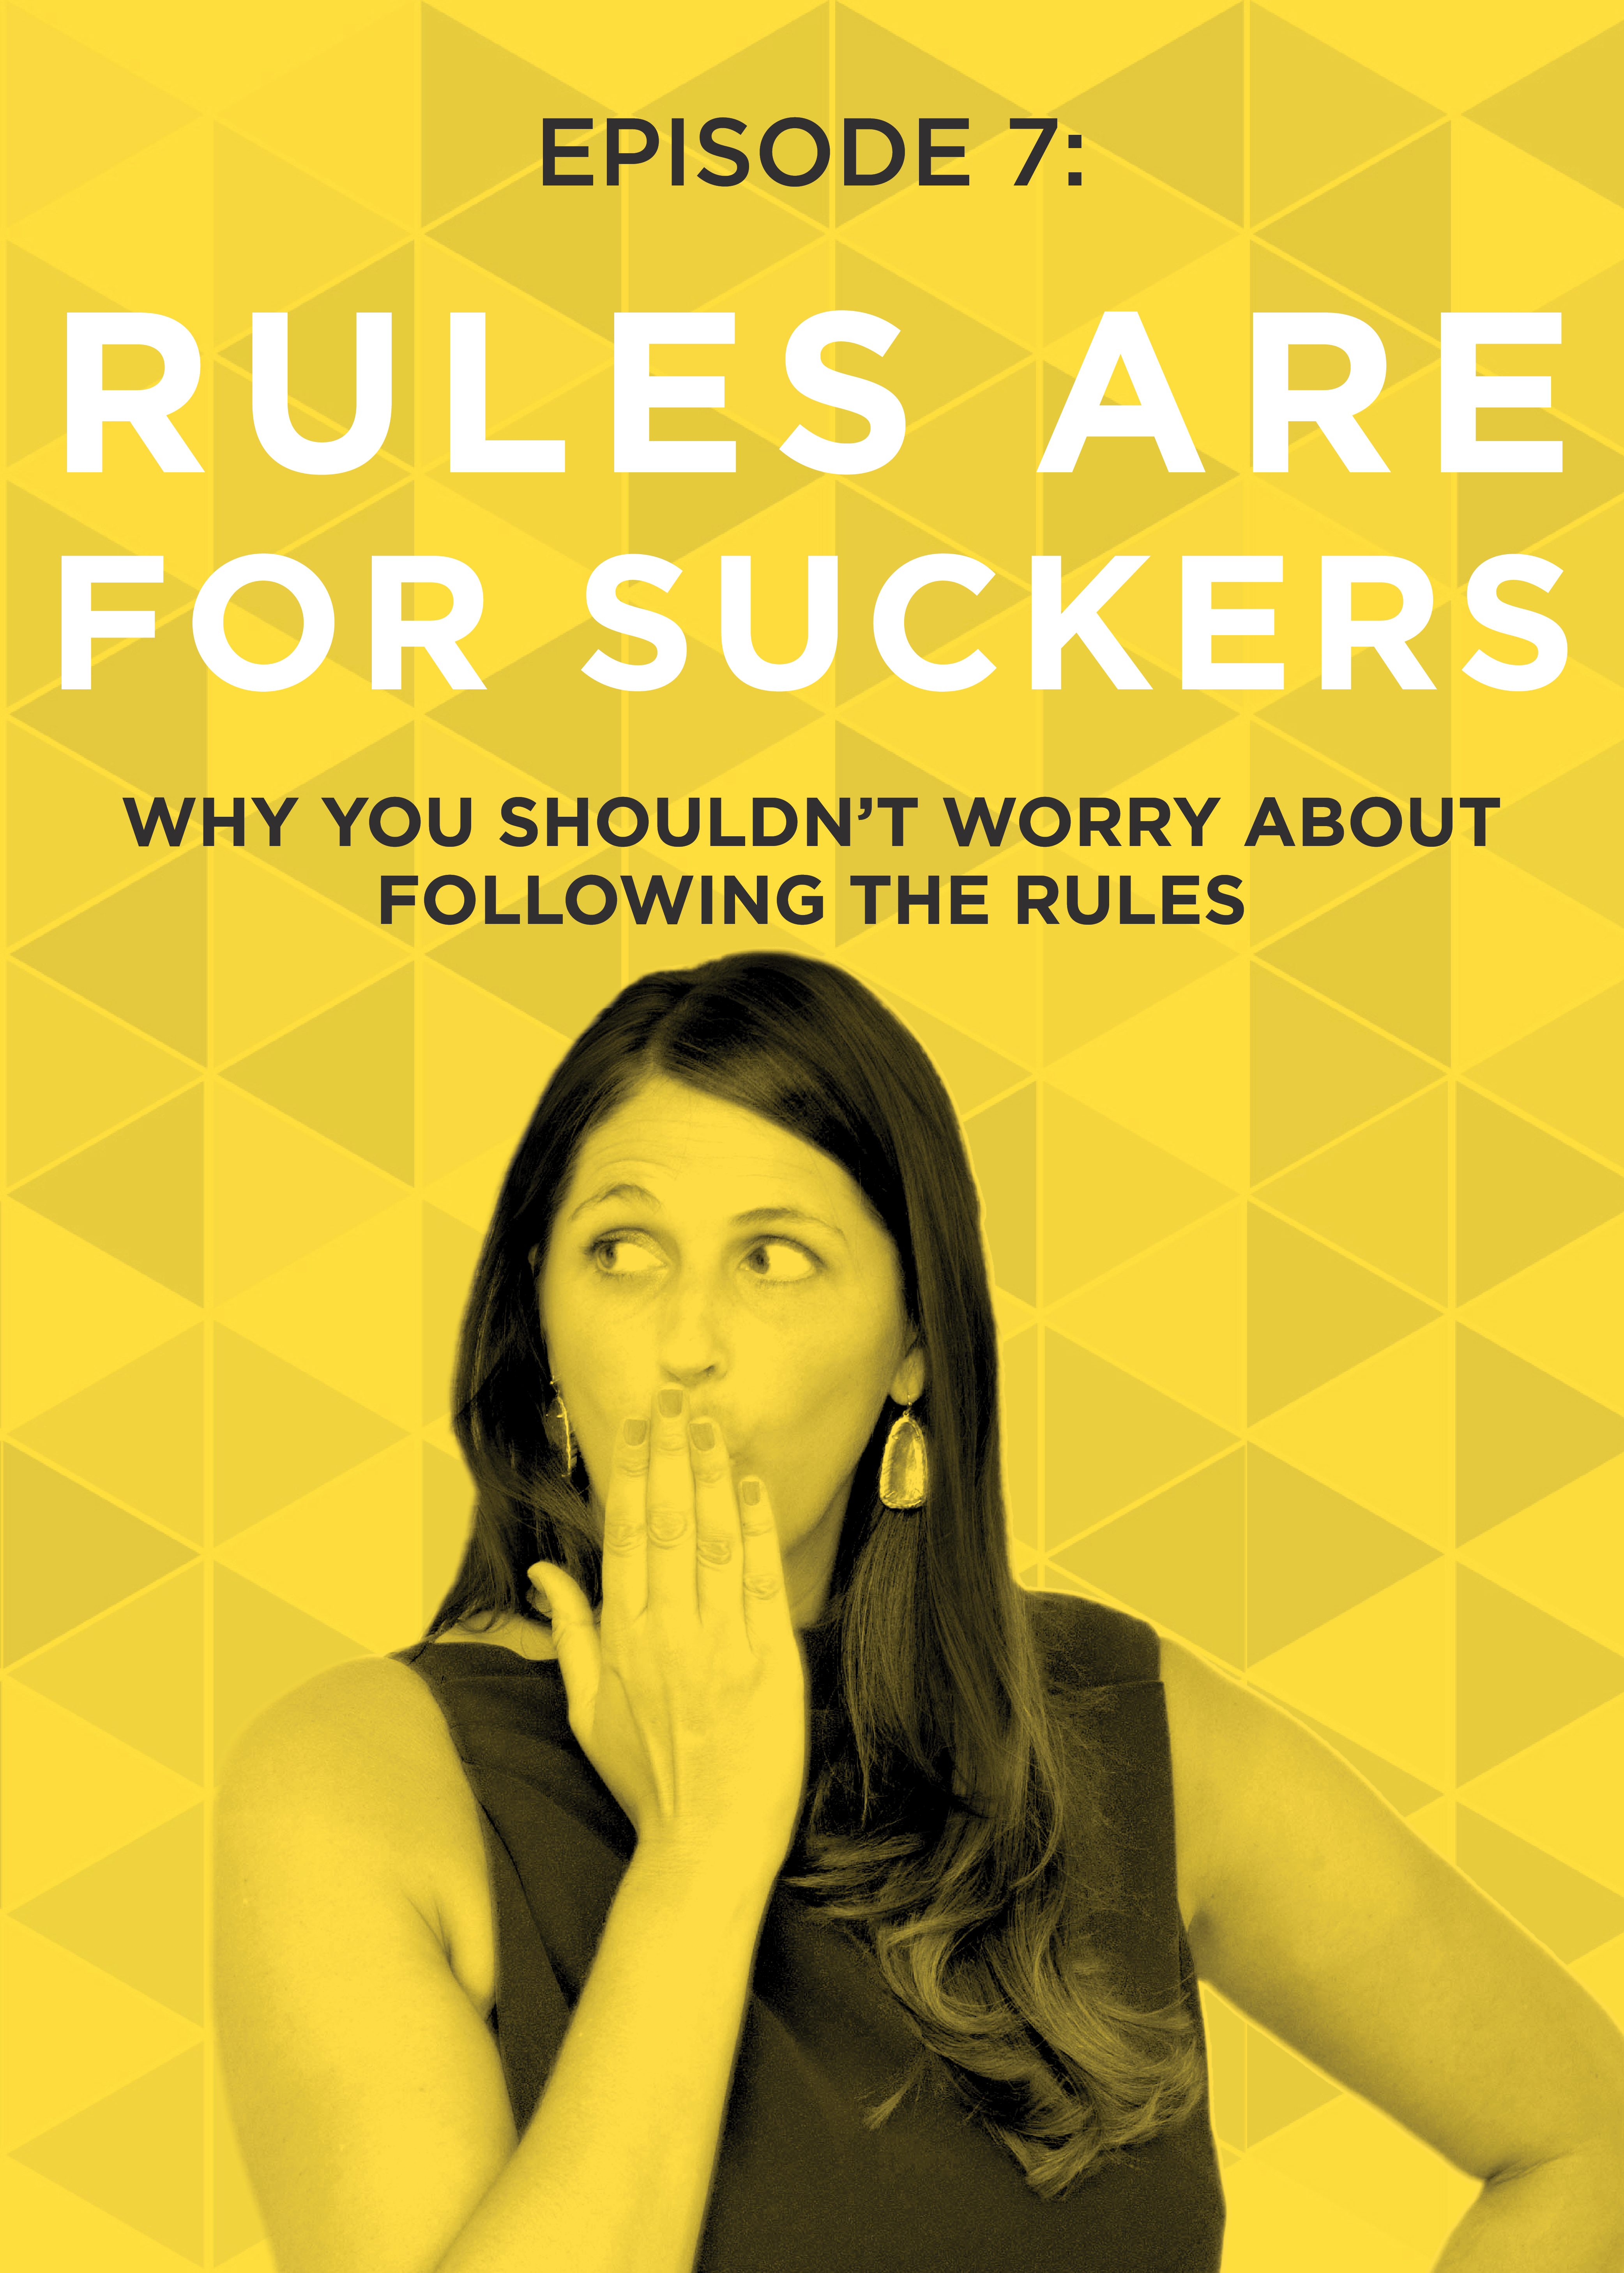 EP 7: Why You Shouldn't Worry About Following The Rules